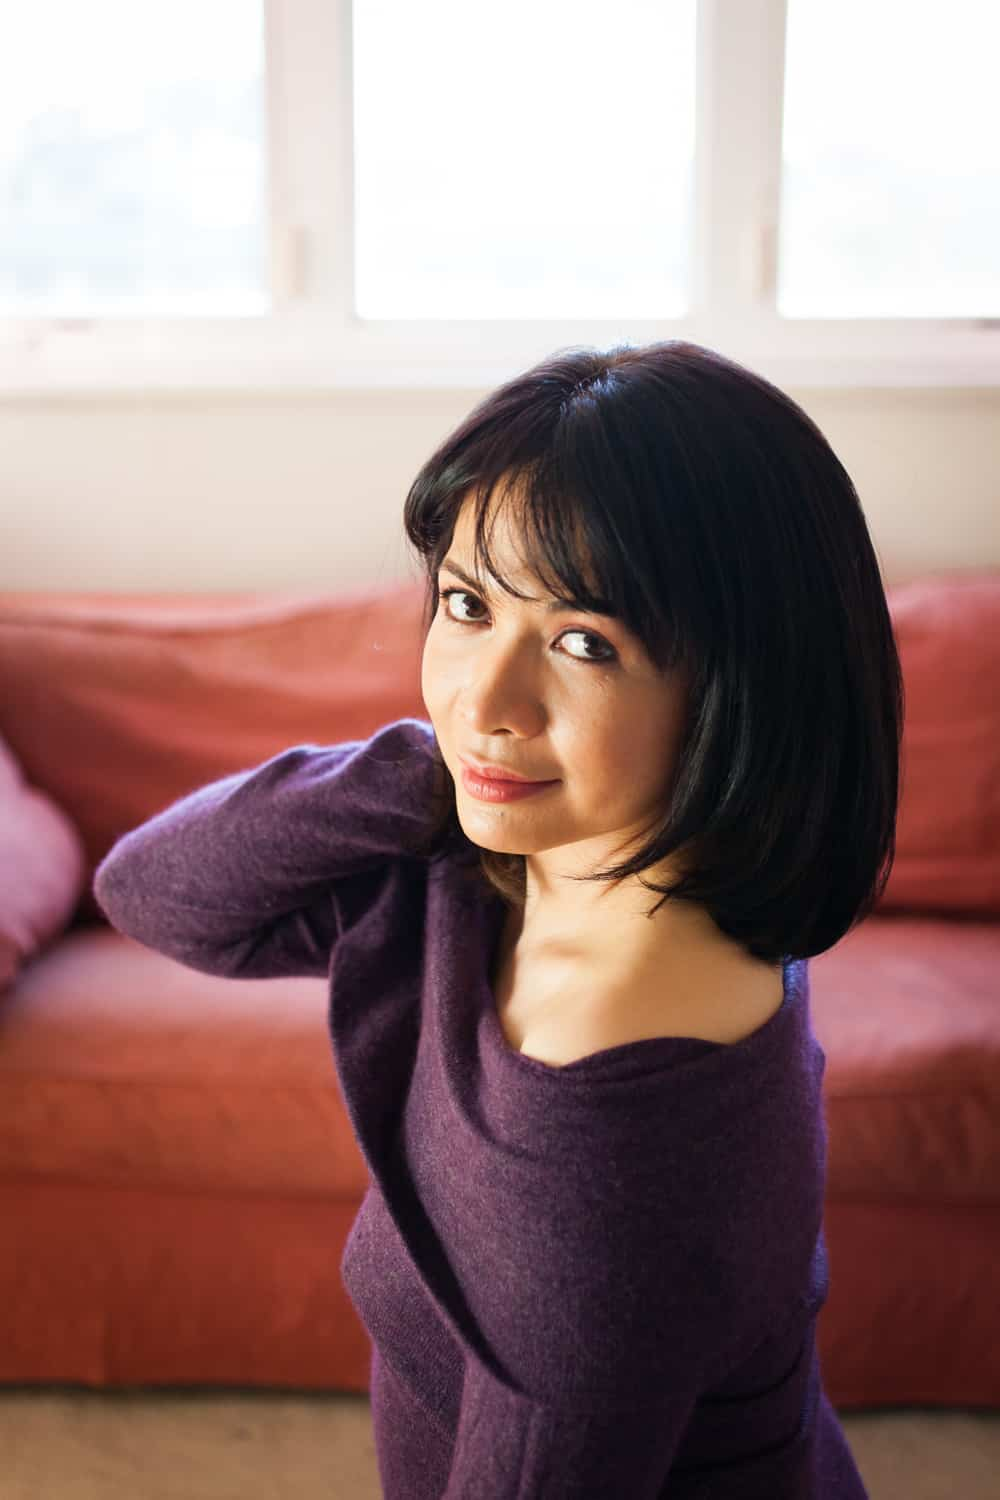 Woman with short black hair wearing purple off-shoulder sweater